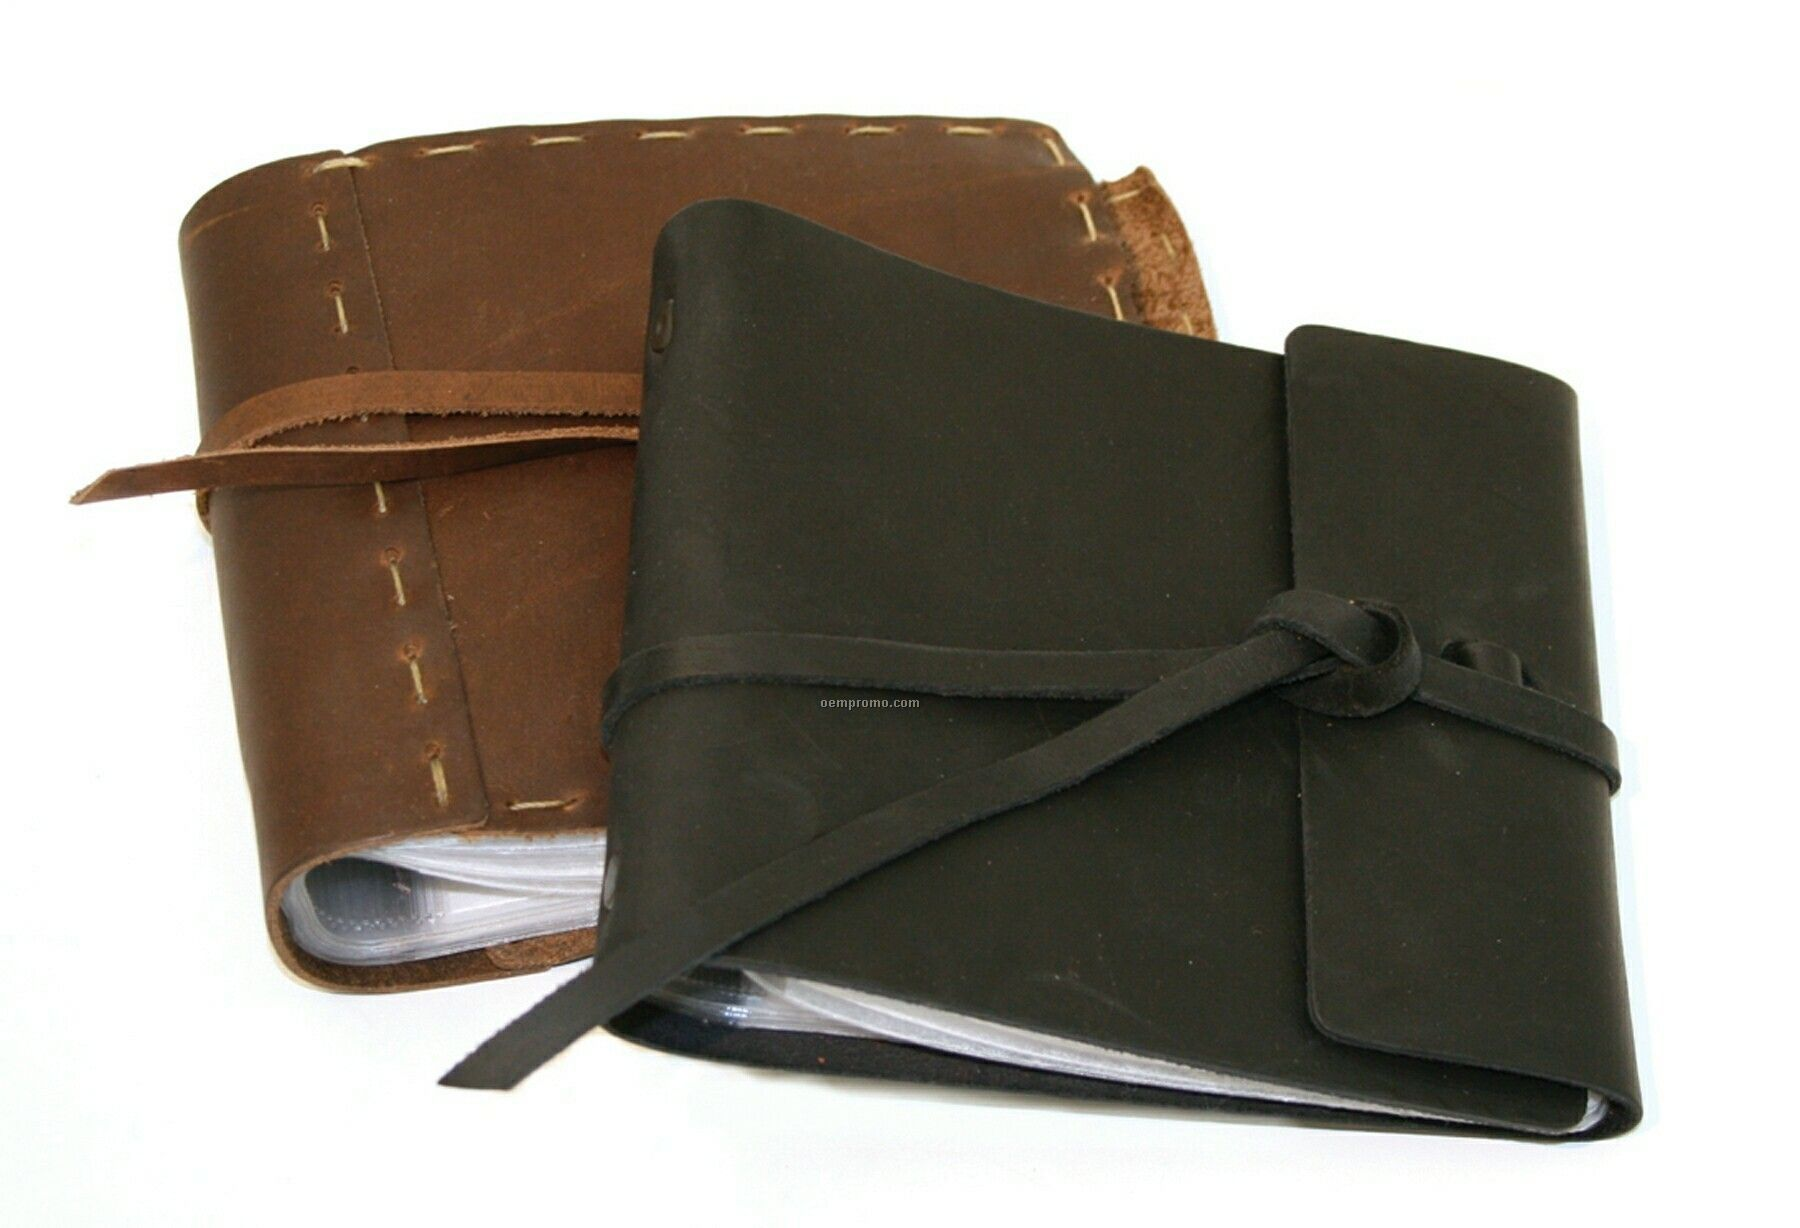 Hand Stitched Leather CD/ DVD Case